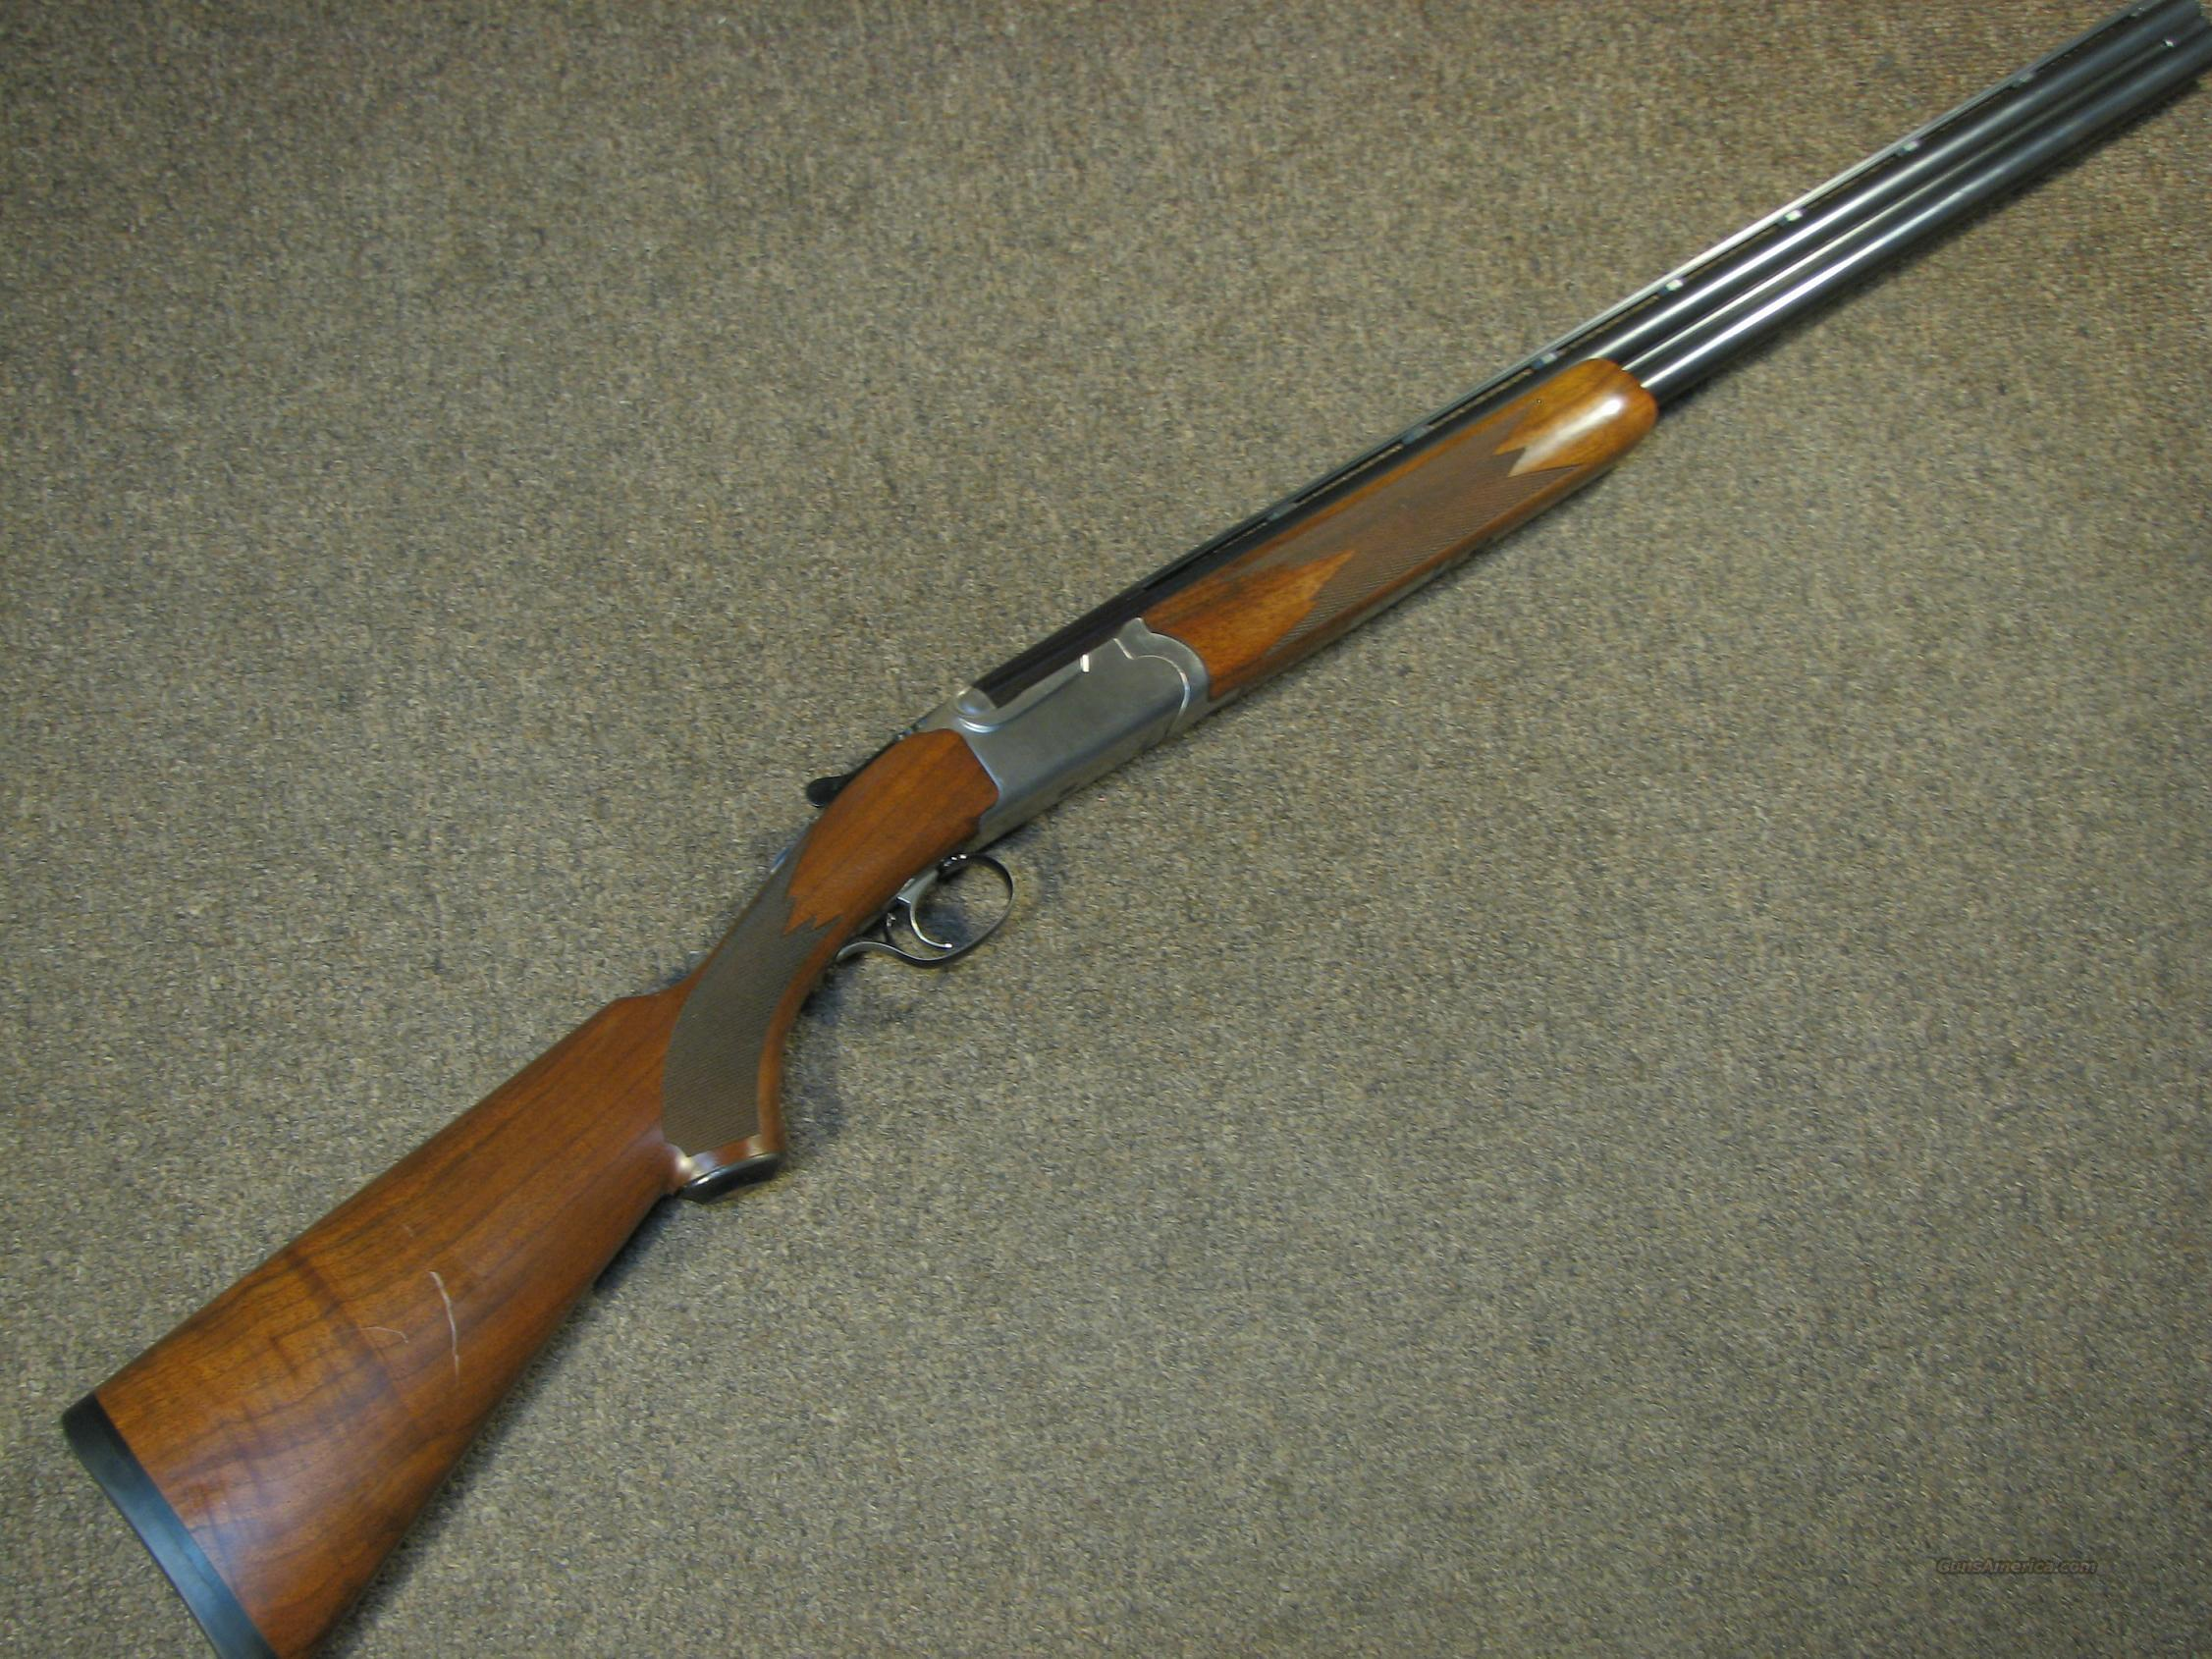 RUGER RED LABEL 20 GAUGE  Guns > Shotguns > Ruger Shotguns > Hunting